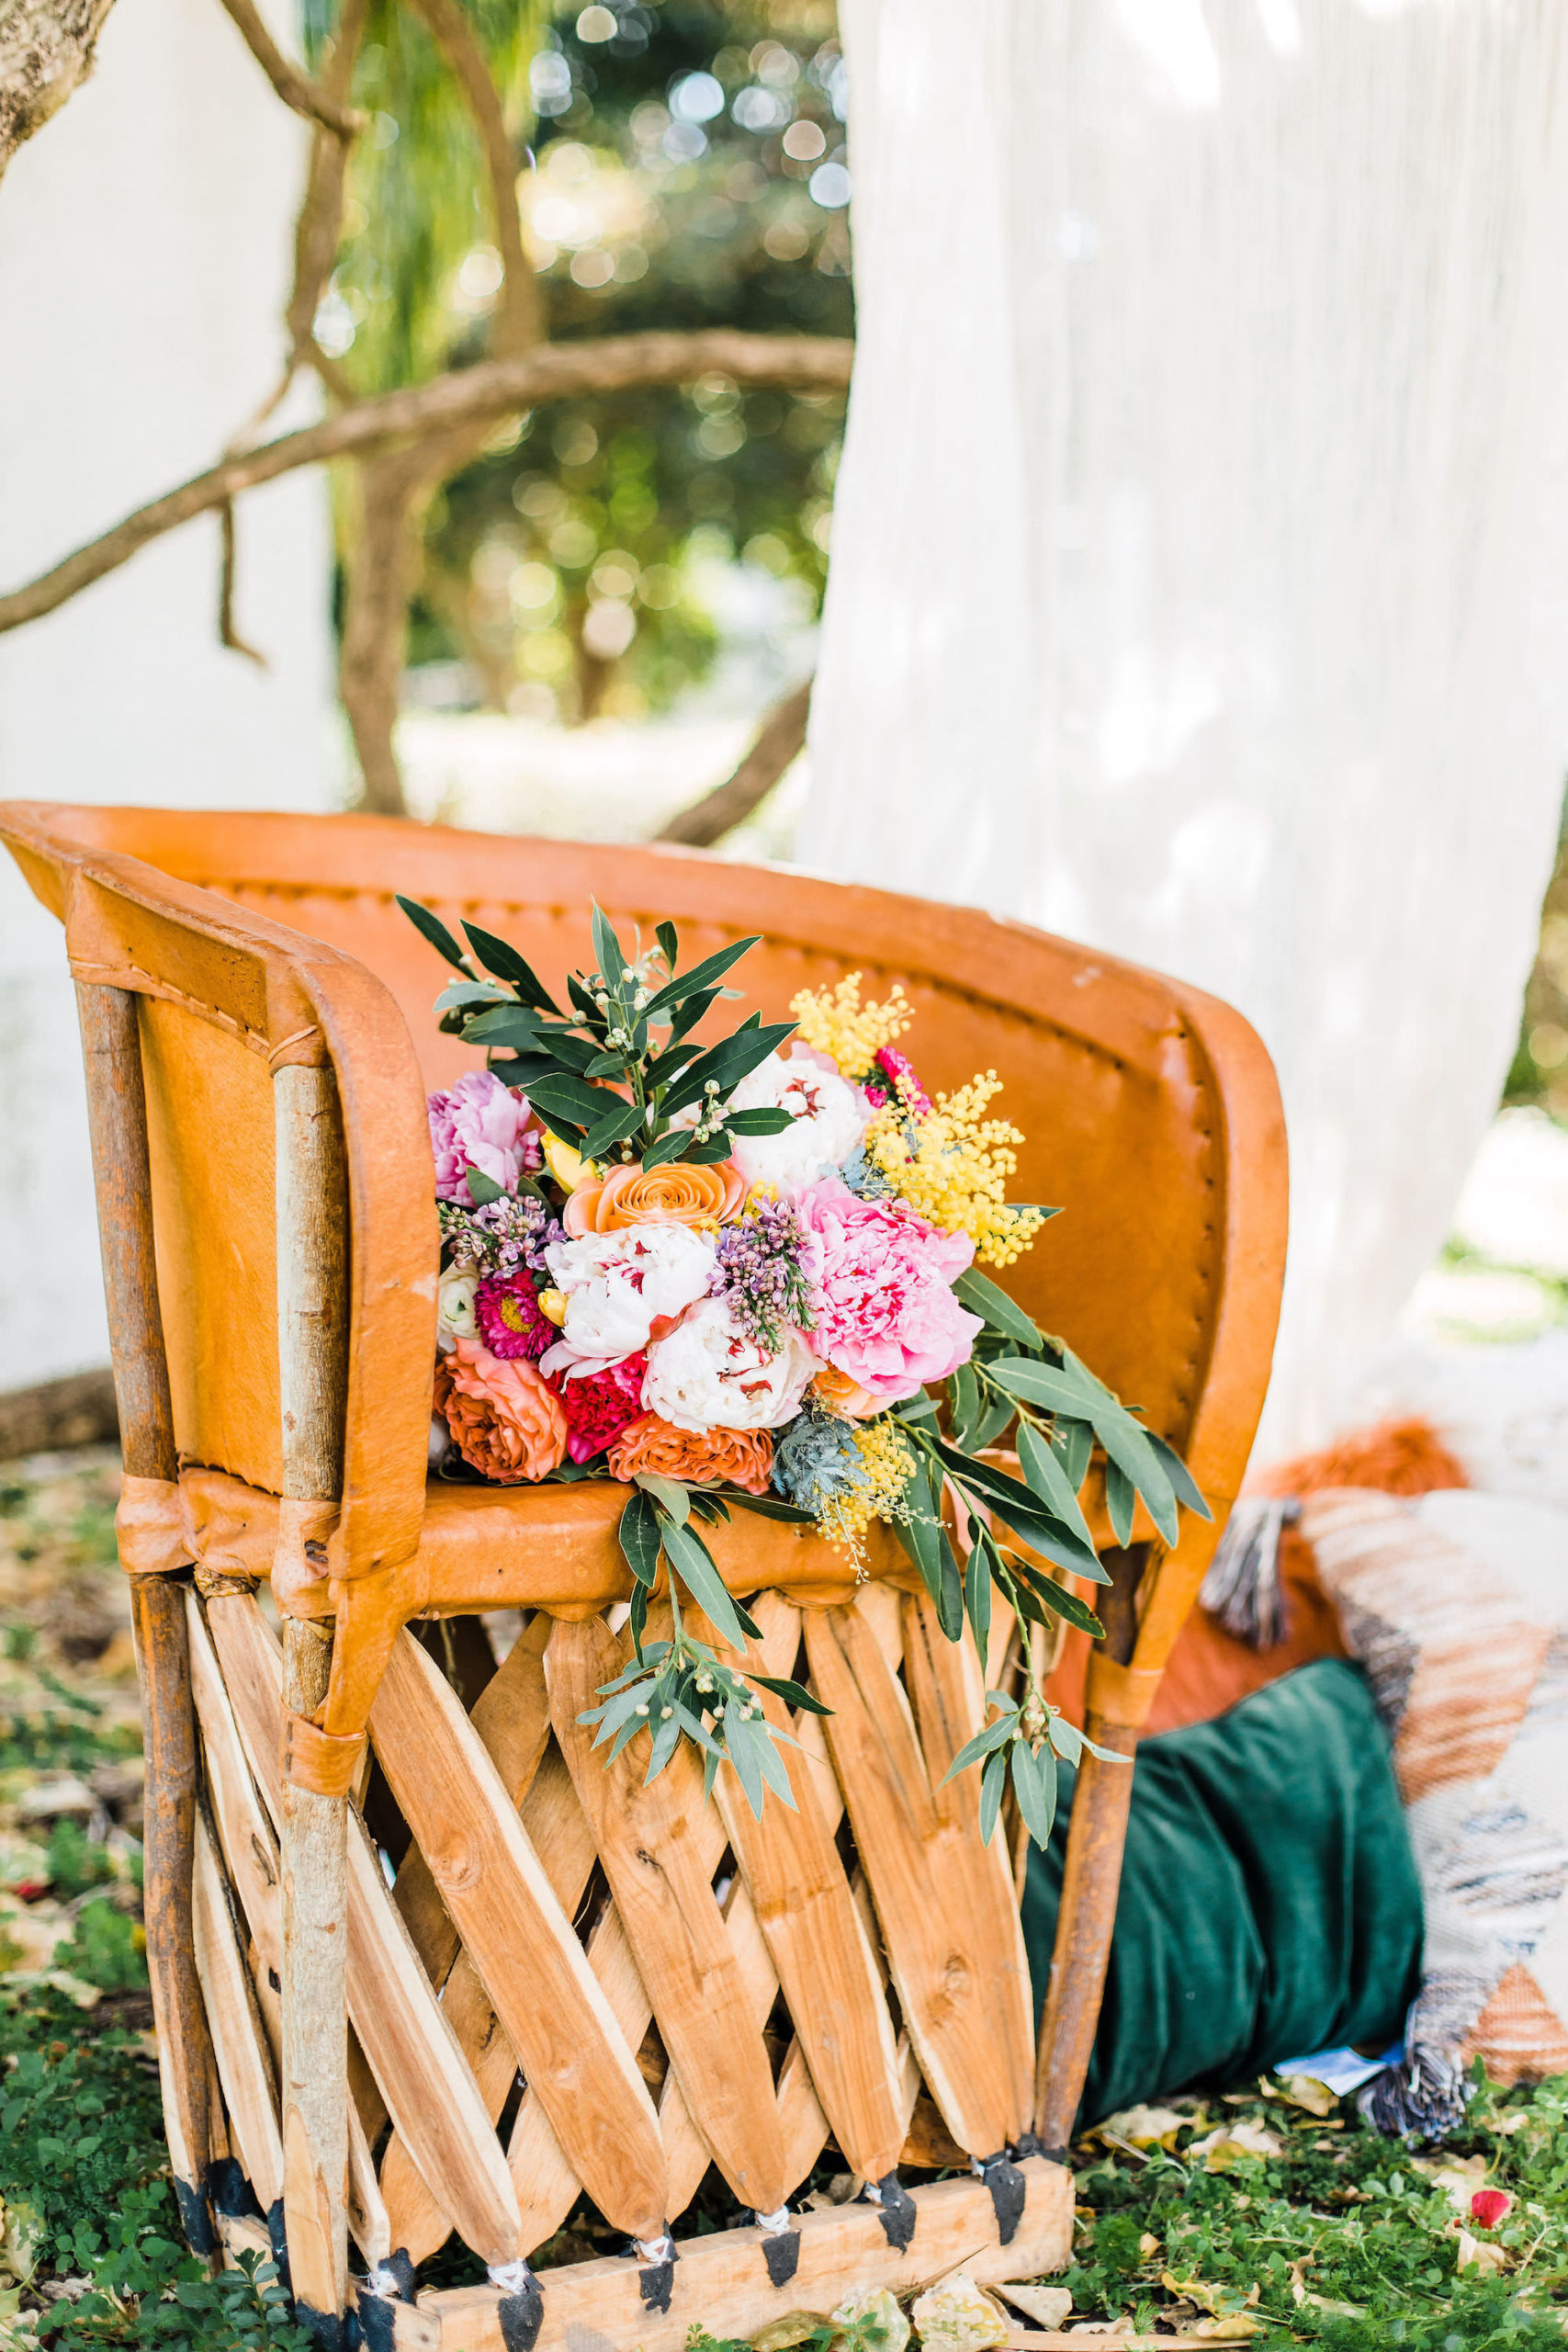 Boho Inspired Watercolor Outdoor Bridal Wooden Chair with Whimsical Colorful Bouquet